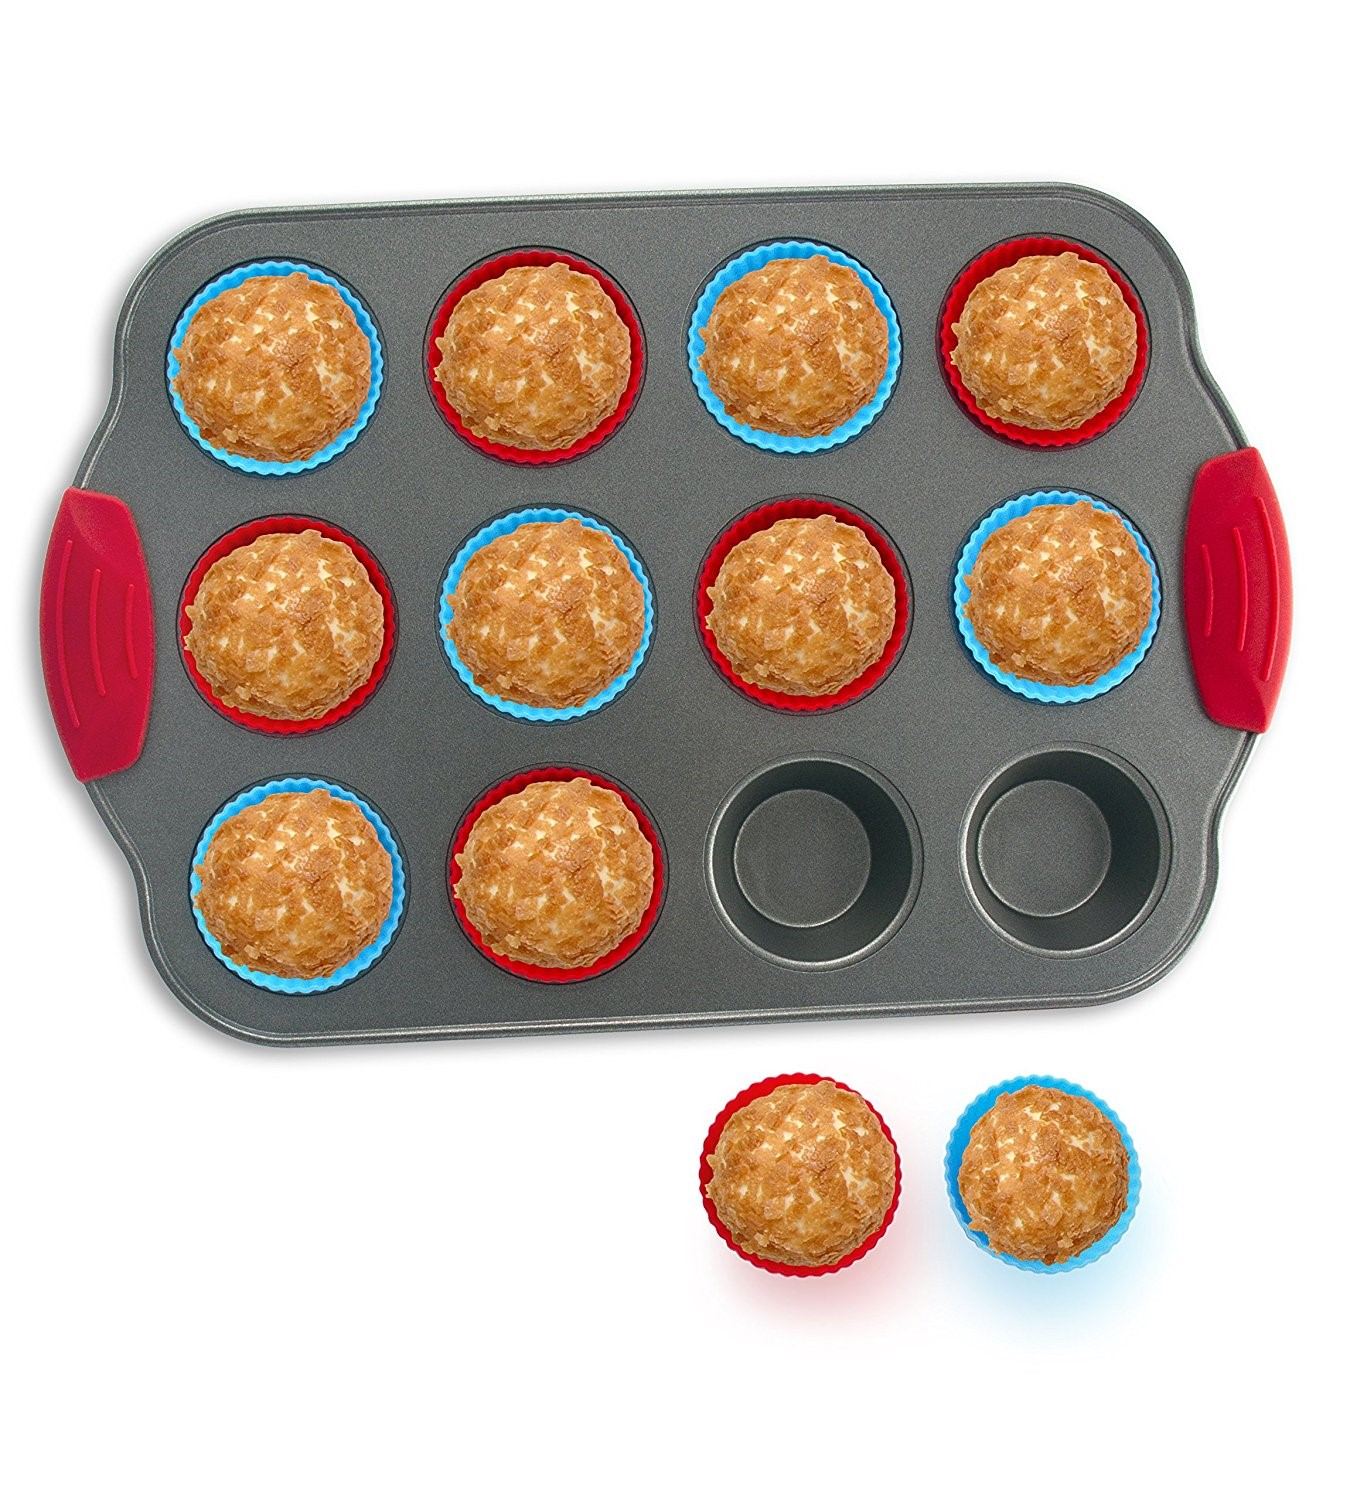 12-Cup Mini Muffin Pan with Silicone Muffin Cups (Set of 12) by Boxiki Kitchen | Professional Nonstick... by Boxiki